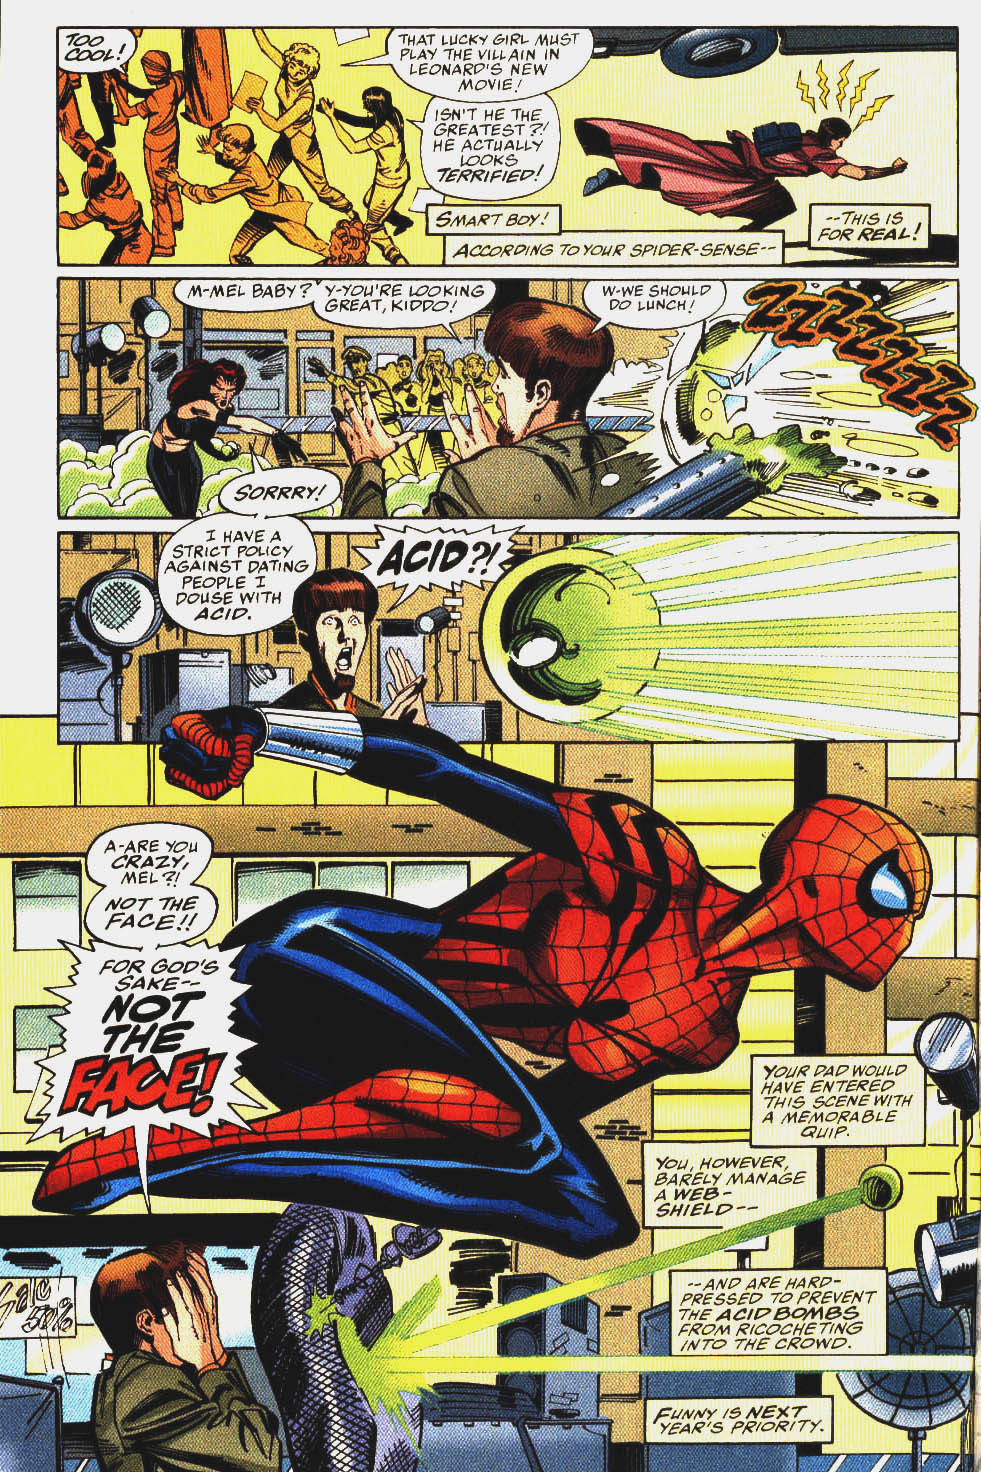 Spider-Girl Annual (1999) #1 pg4, pencils by Pat Olliffe & inks by Sal Buscema.